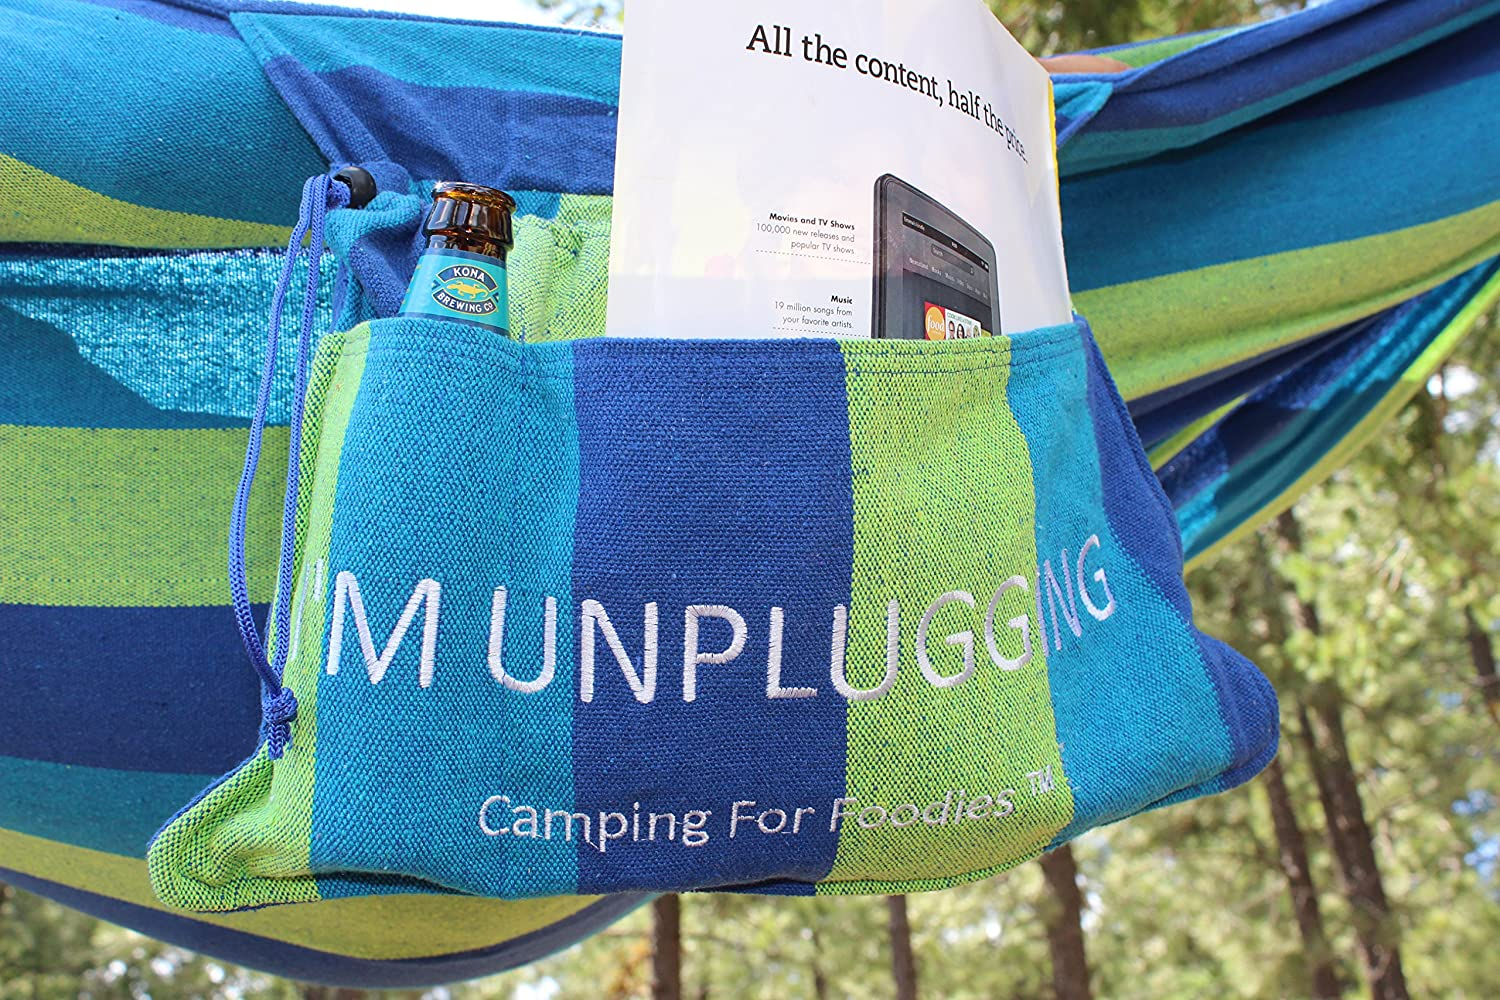 Attached Accessory Bag made our list of unique camping gifts for men which are some of the most cool camping gifts for special occasions and the CampingForFoodies hand selected best camping gifts for him are awesome for the rest of the family too!